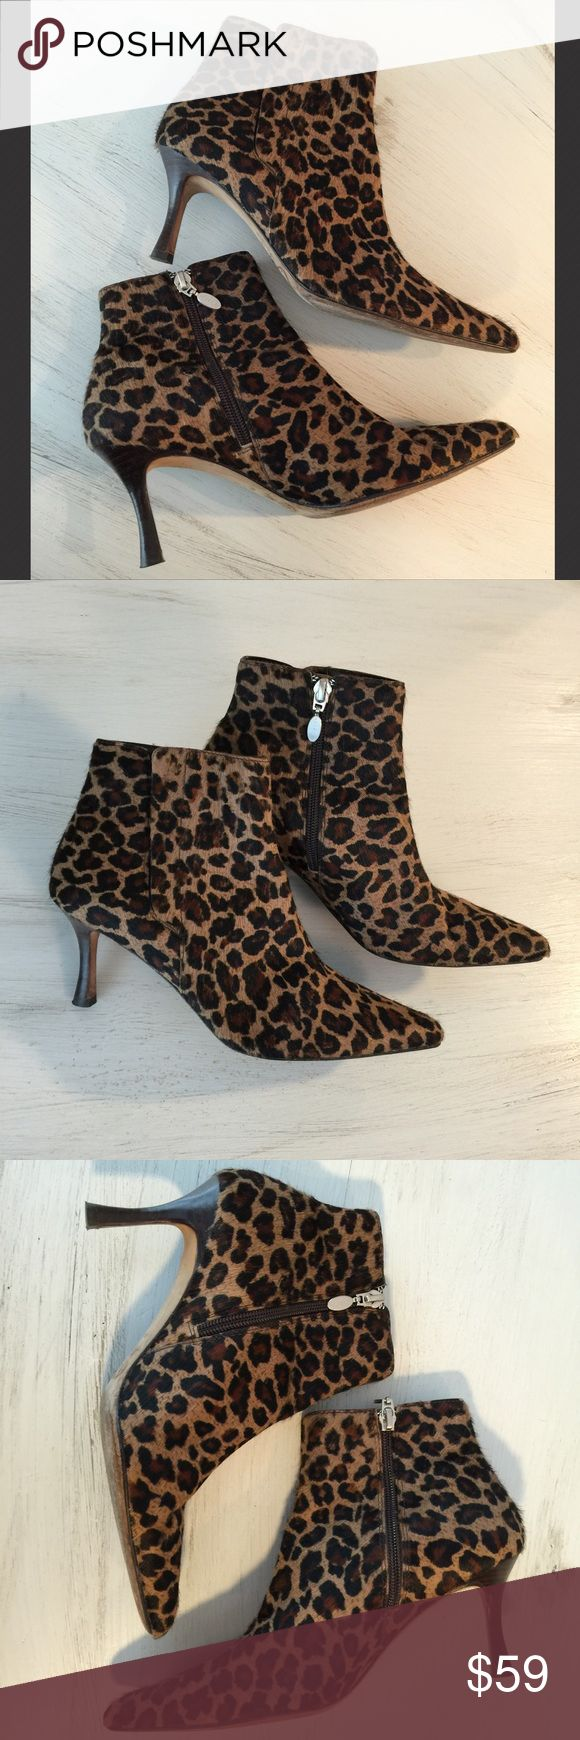 Circa Joan & David Leopard-Print Calf Hair Boots These are gorgeous calf hair ankle boots with side zip by Circa Joan & David. They are in excellent used condition with light wear. No wear to the calf hair. Leather soles. 2.5 inch heel. Size 6. Joan & David Shoes Ankle Boots & Booties